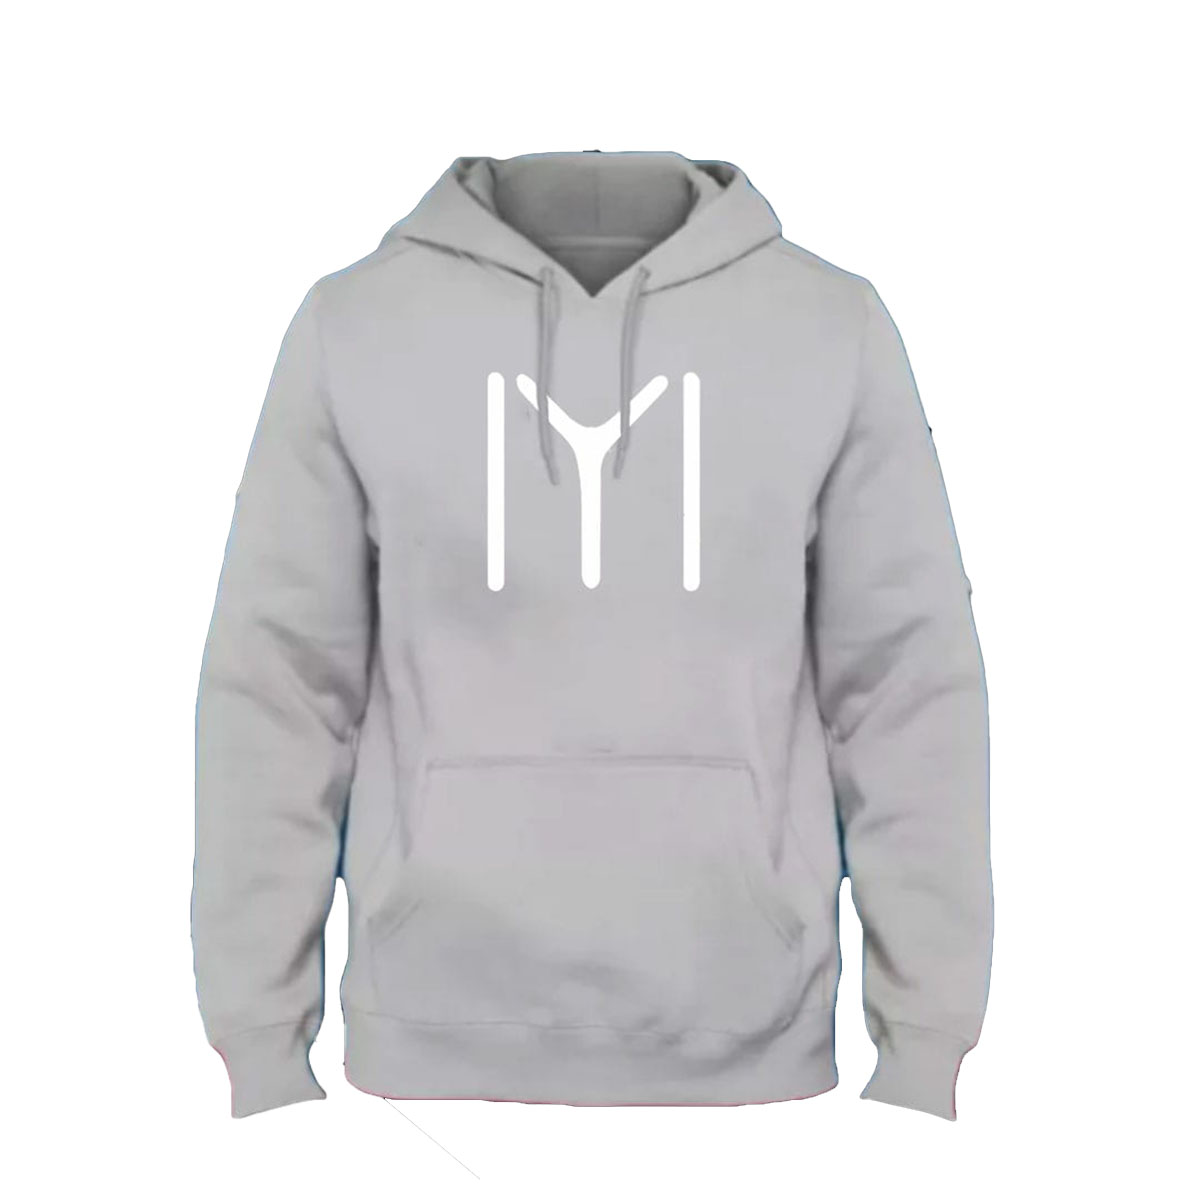 High quality imported casual ERTUGRUL IYI printed grey kangro hoodie pull over for winter